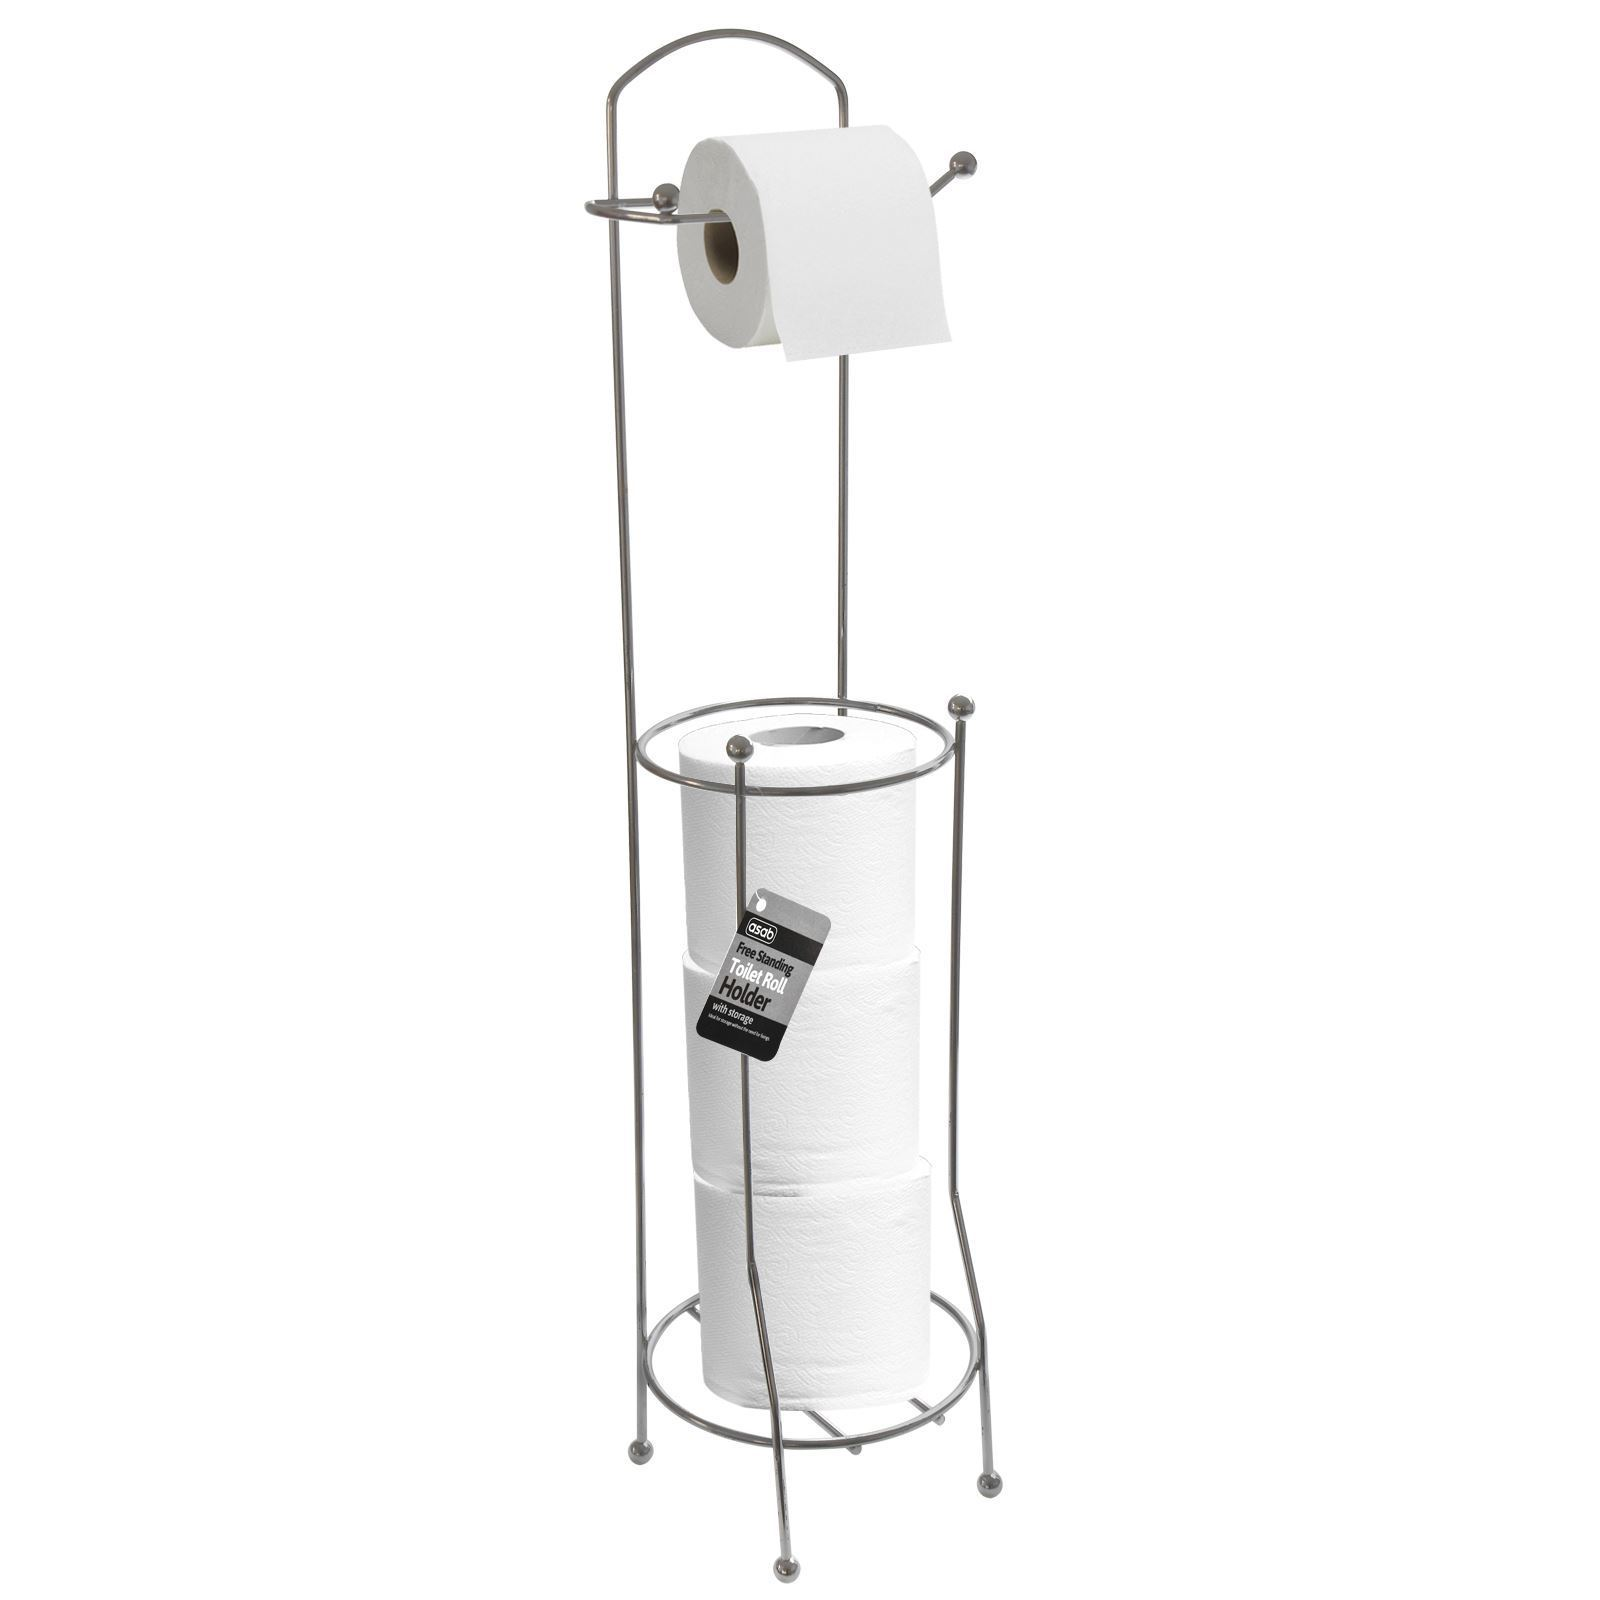 Toilet Roll Holder Wowzooma